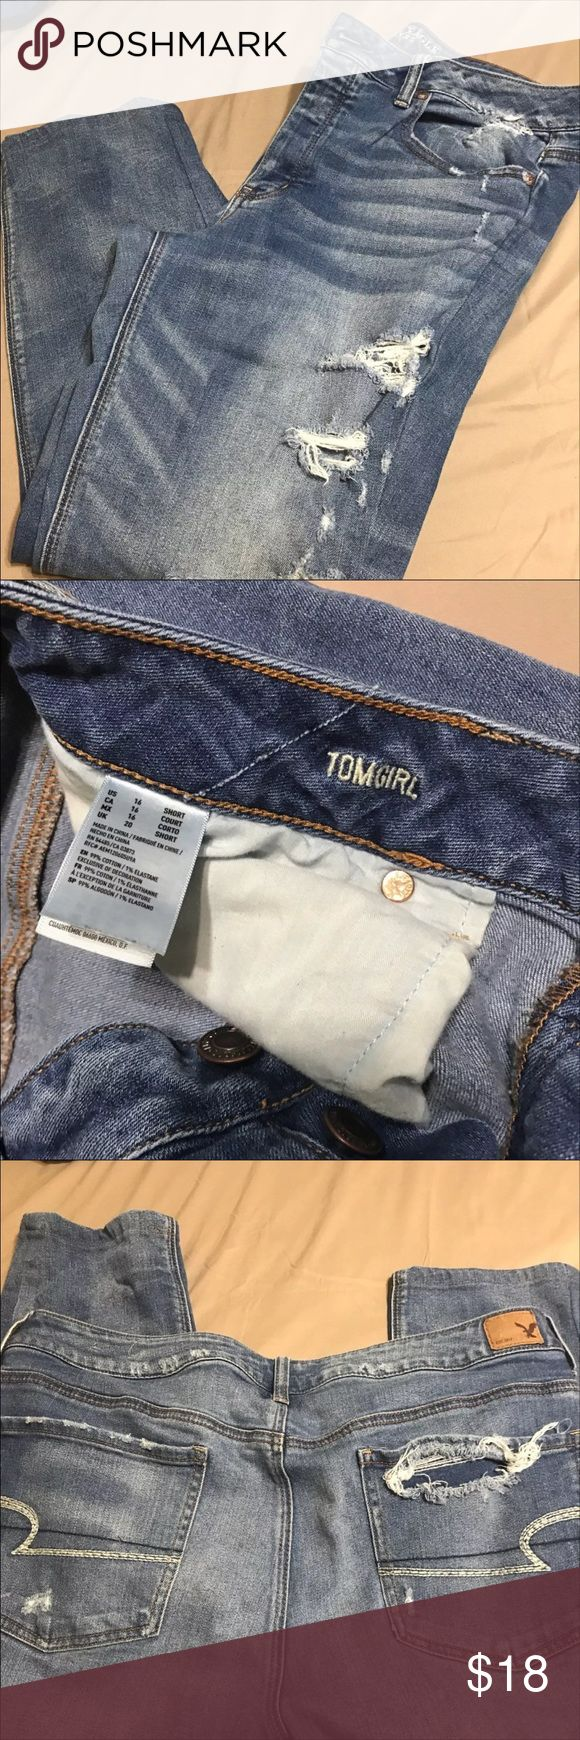 American eagle Tom girl jeans ae size 16 short American Eagle Outfitters Jeans Ankle & Cropped